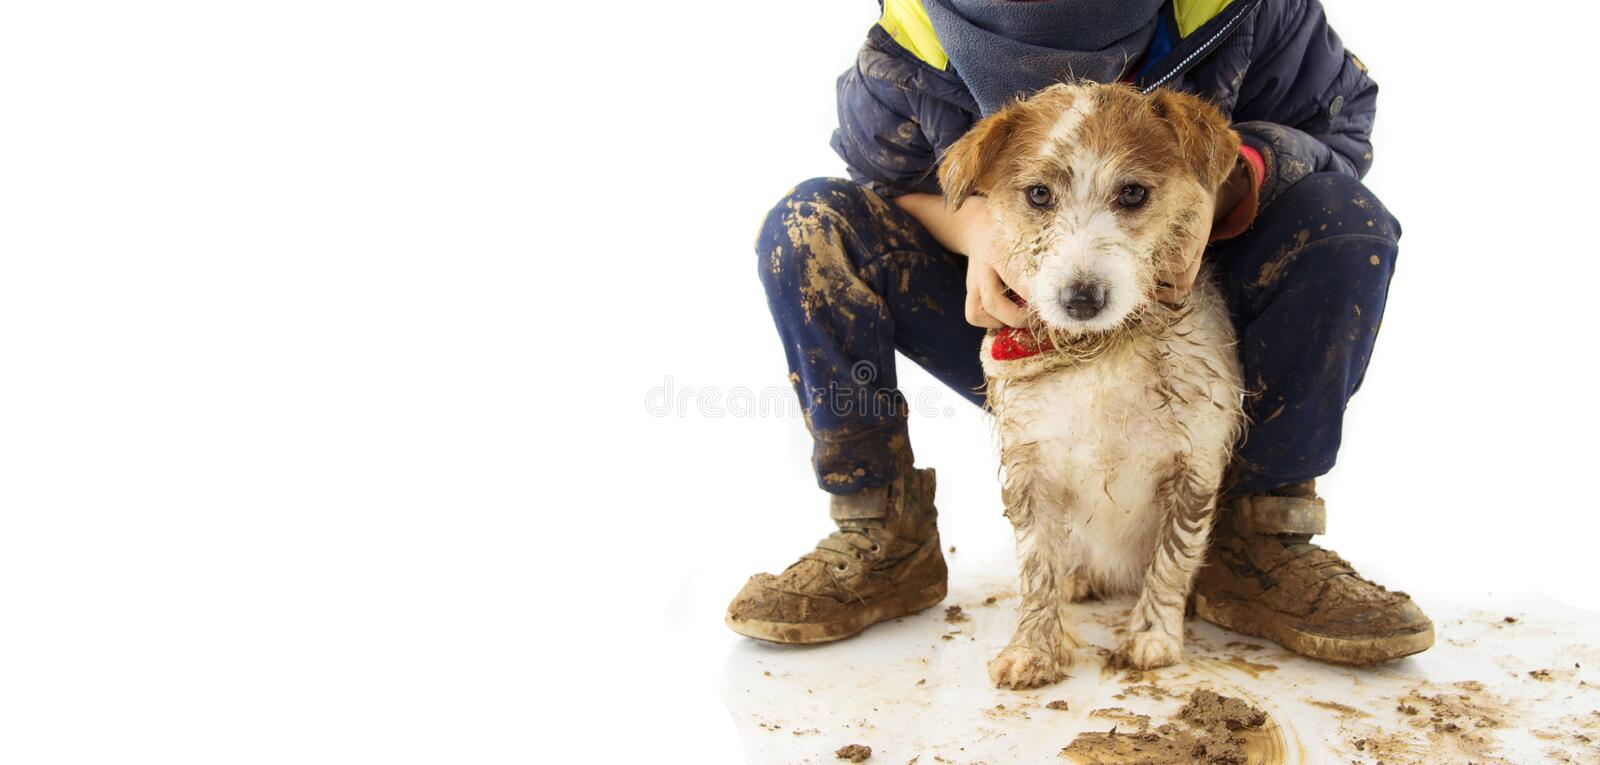 DIRTY  JACK RUSSELL DOG AND LITTLE BOY CHILD.  AFTER PLAY IN A MUD PUDDLE. ISOLATED SHOT AGAINST WHITE BACKGROUND. DIRTY JACK RUSSELL DOG AND LITTLE BOY CHILD stock photo